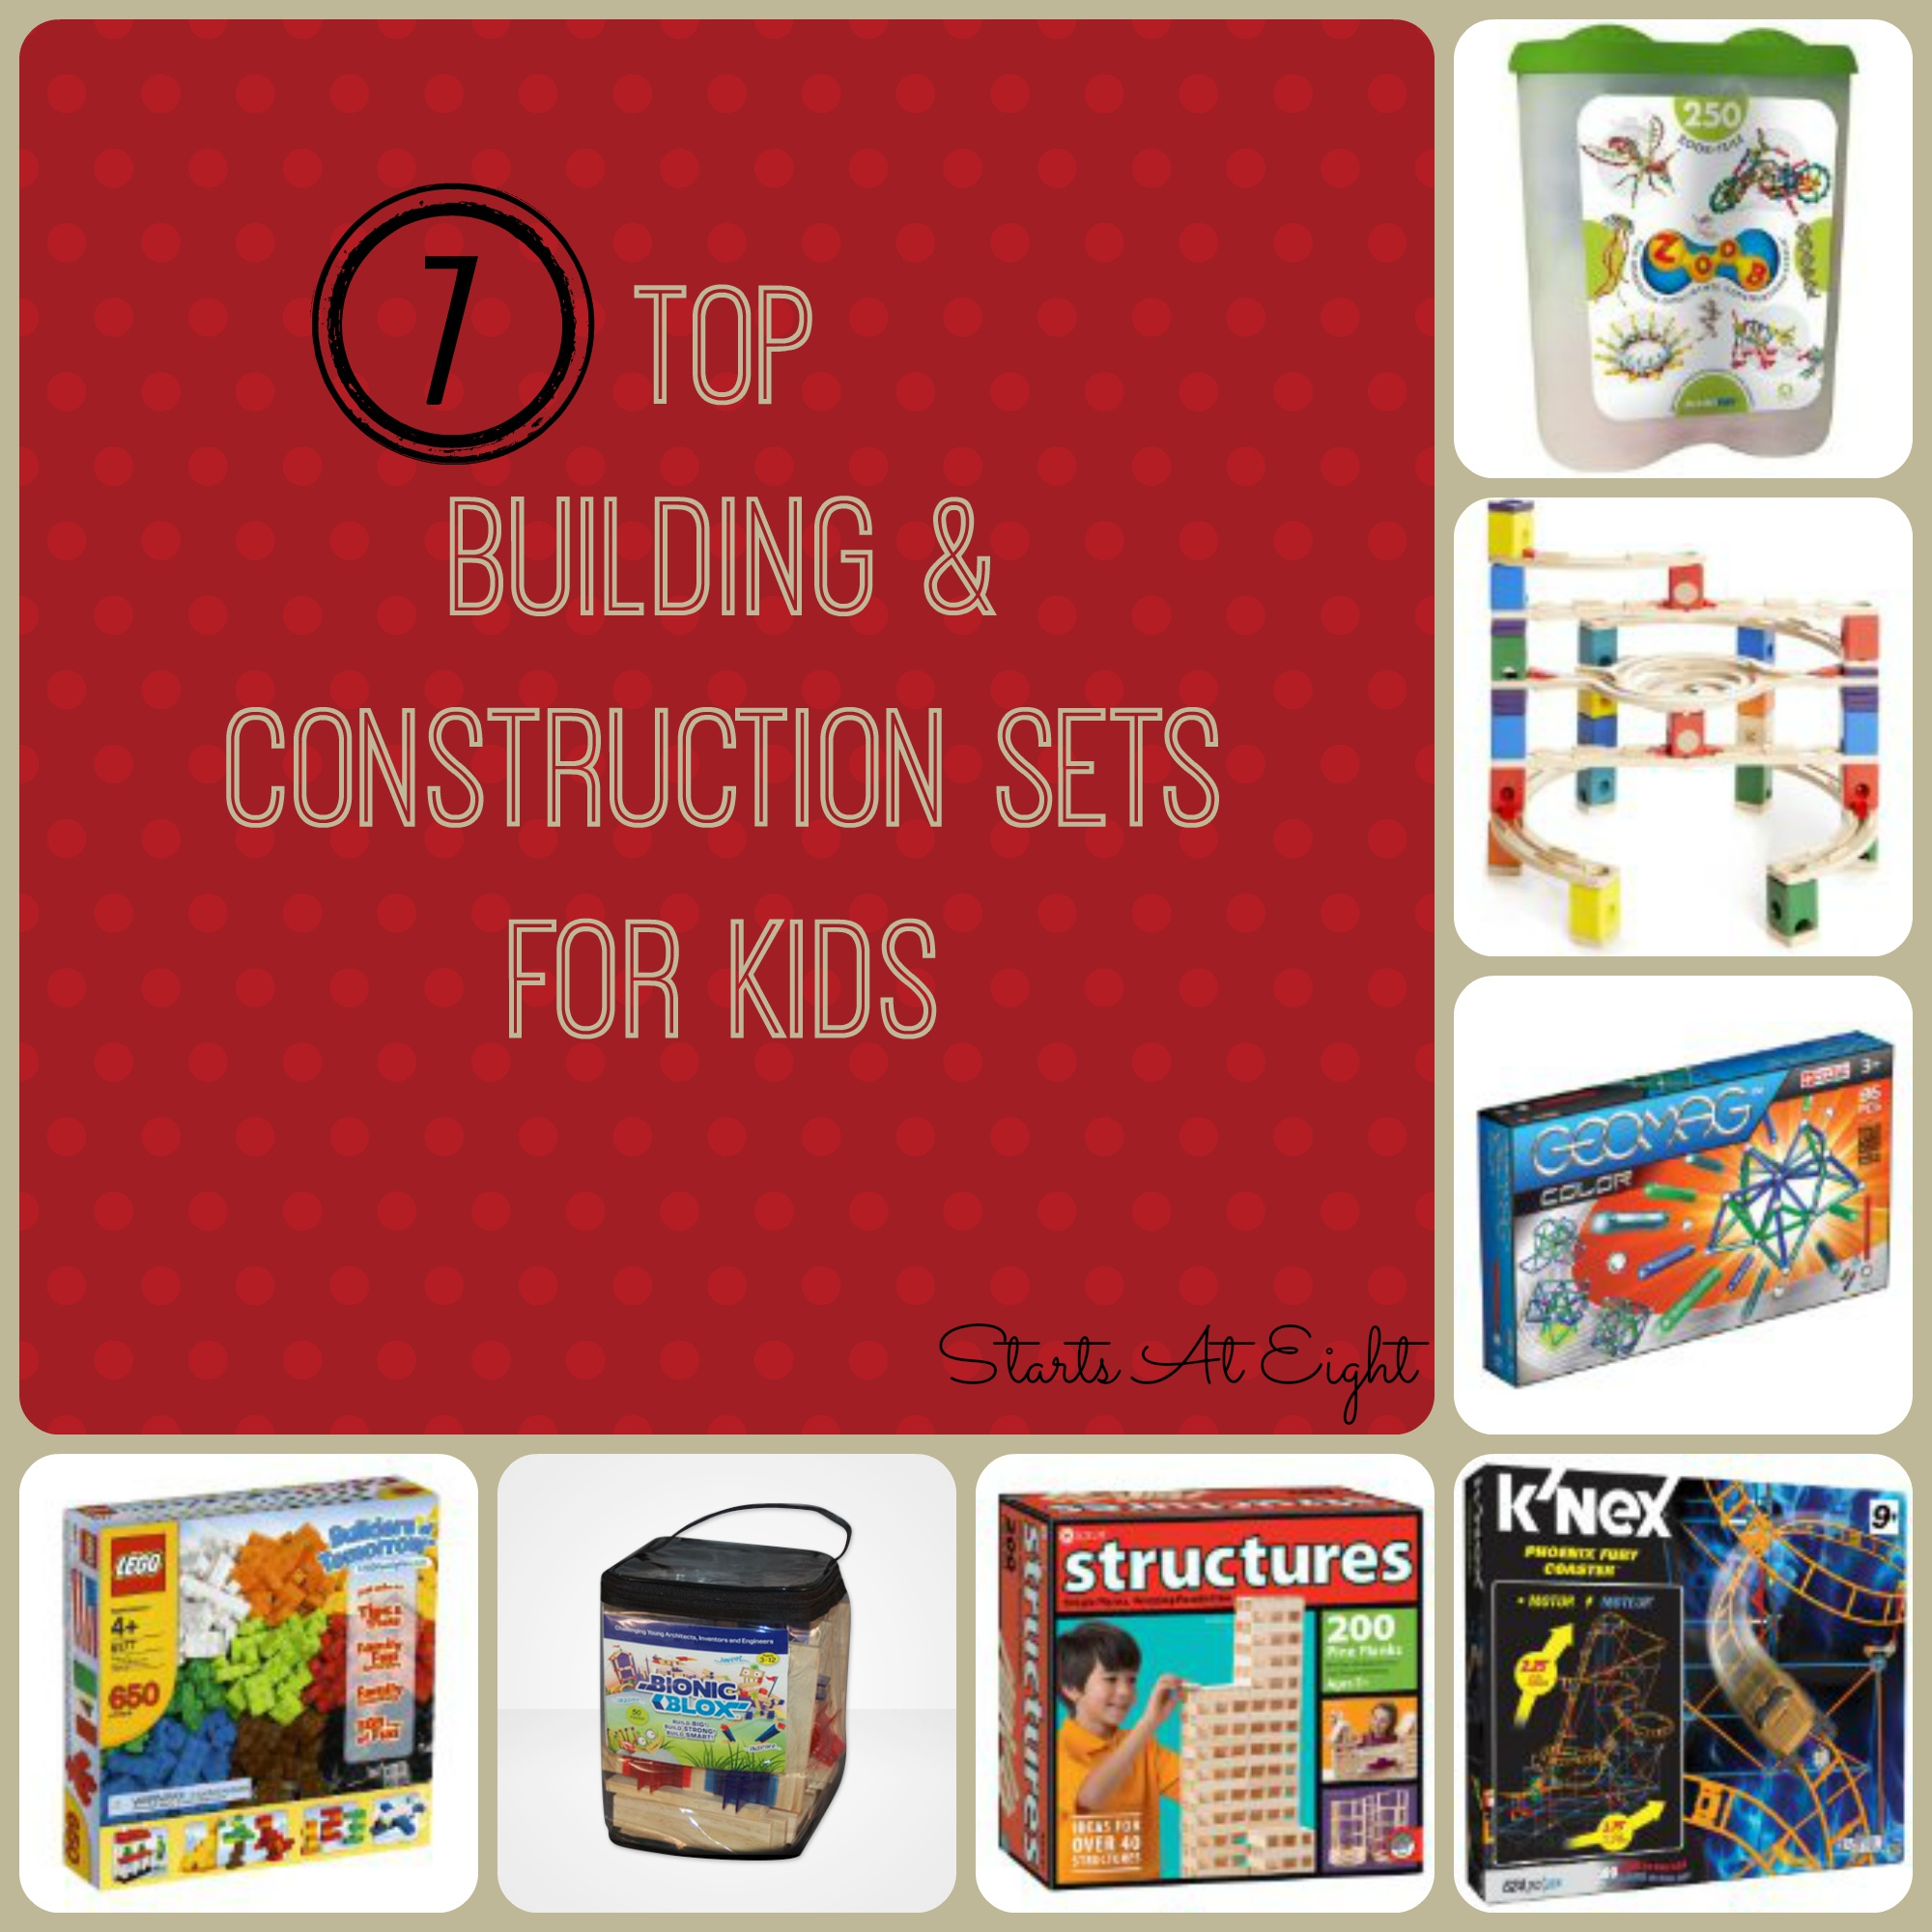 7 Top Building Construction Sets for Kids